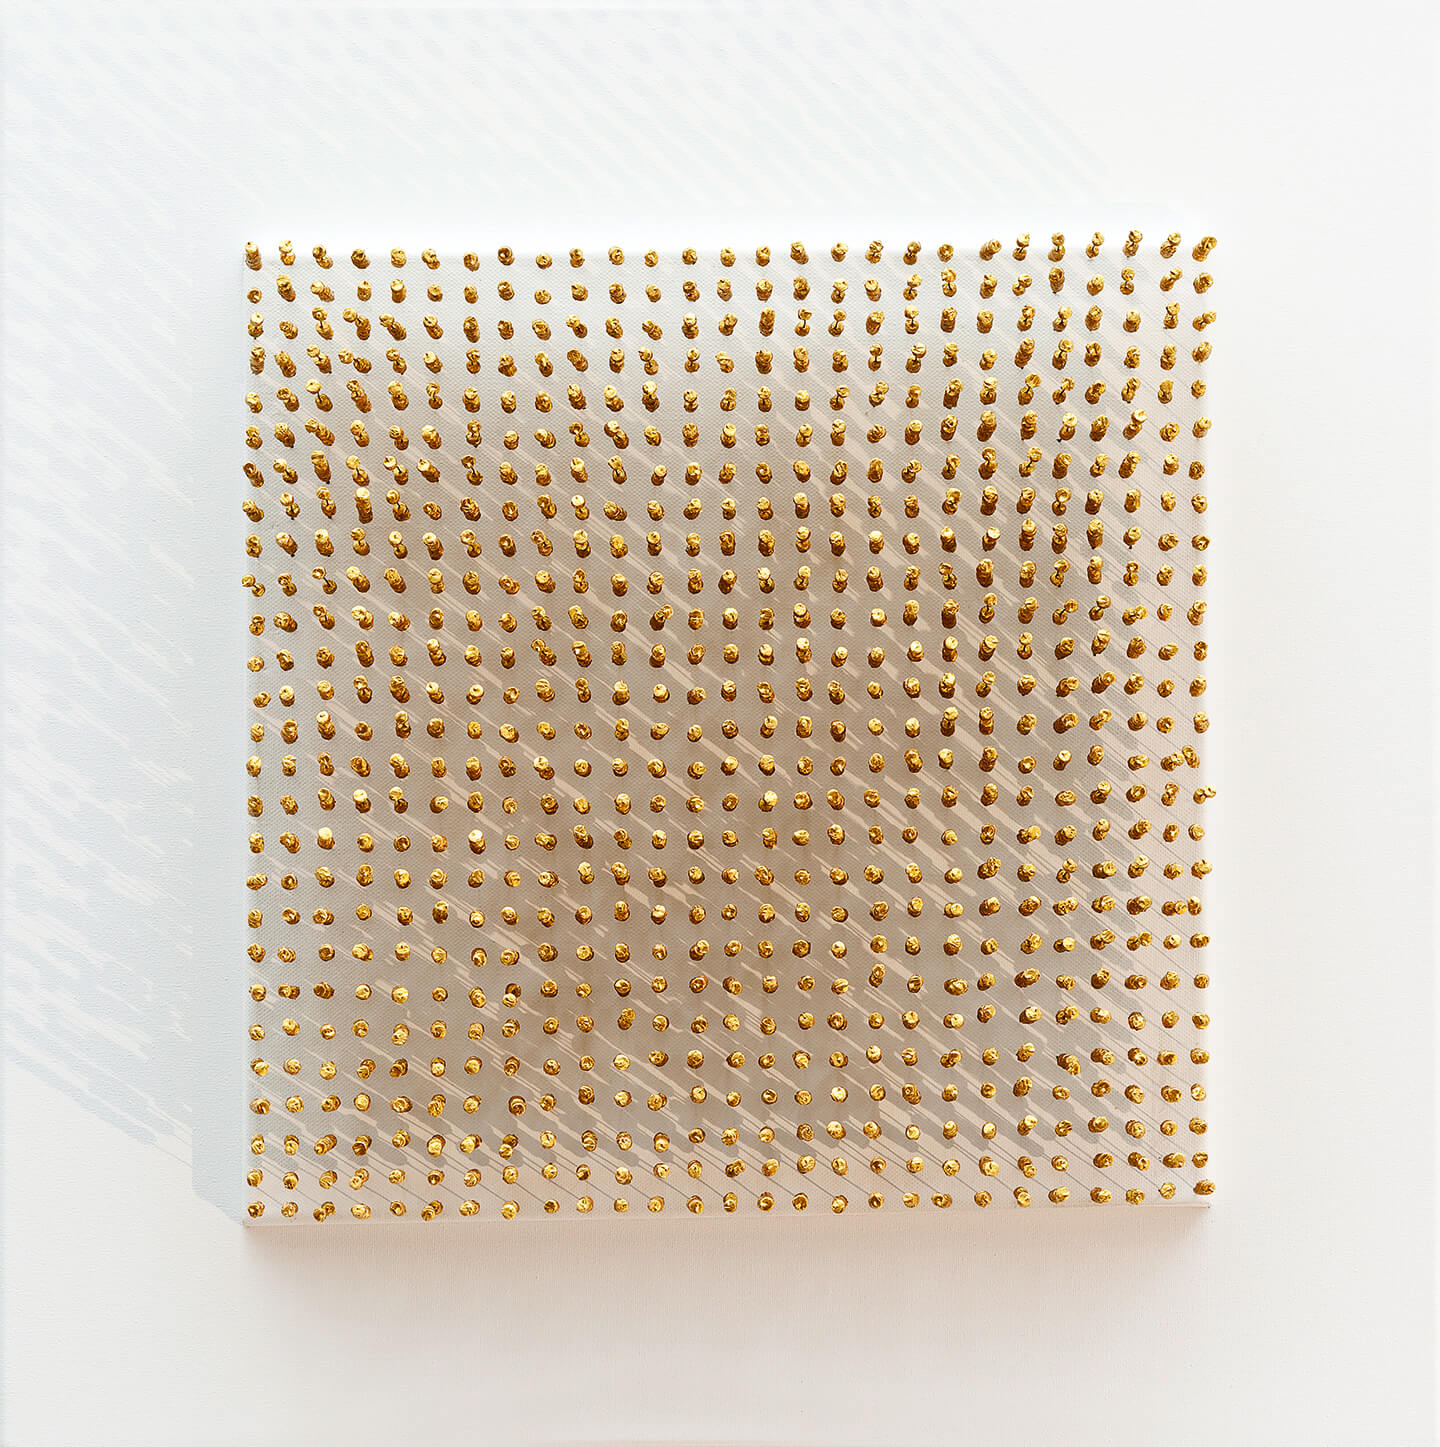 Golden Soldiers, 2014, bottle corks, wire, acrylic paint on canvas